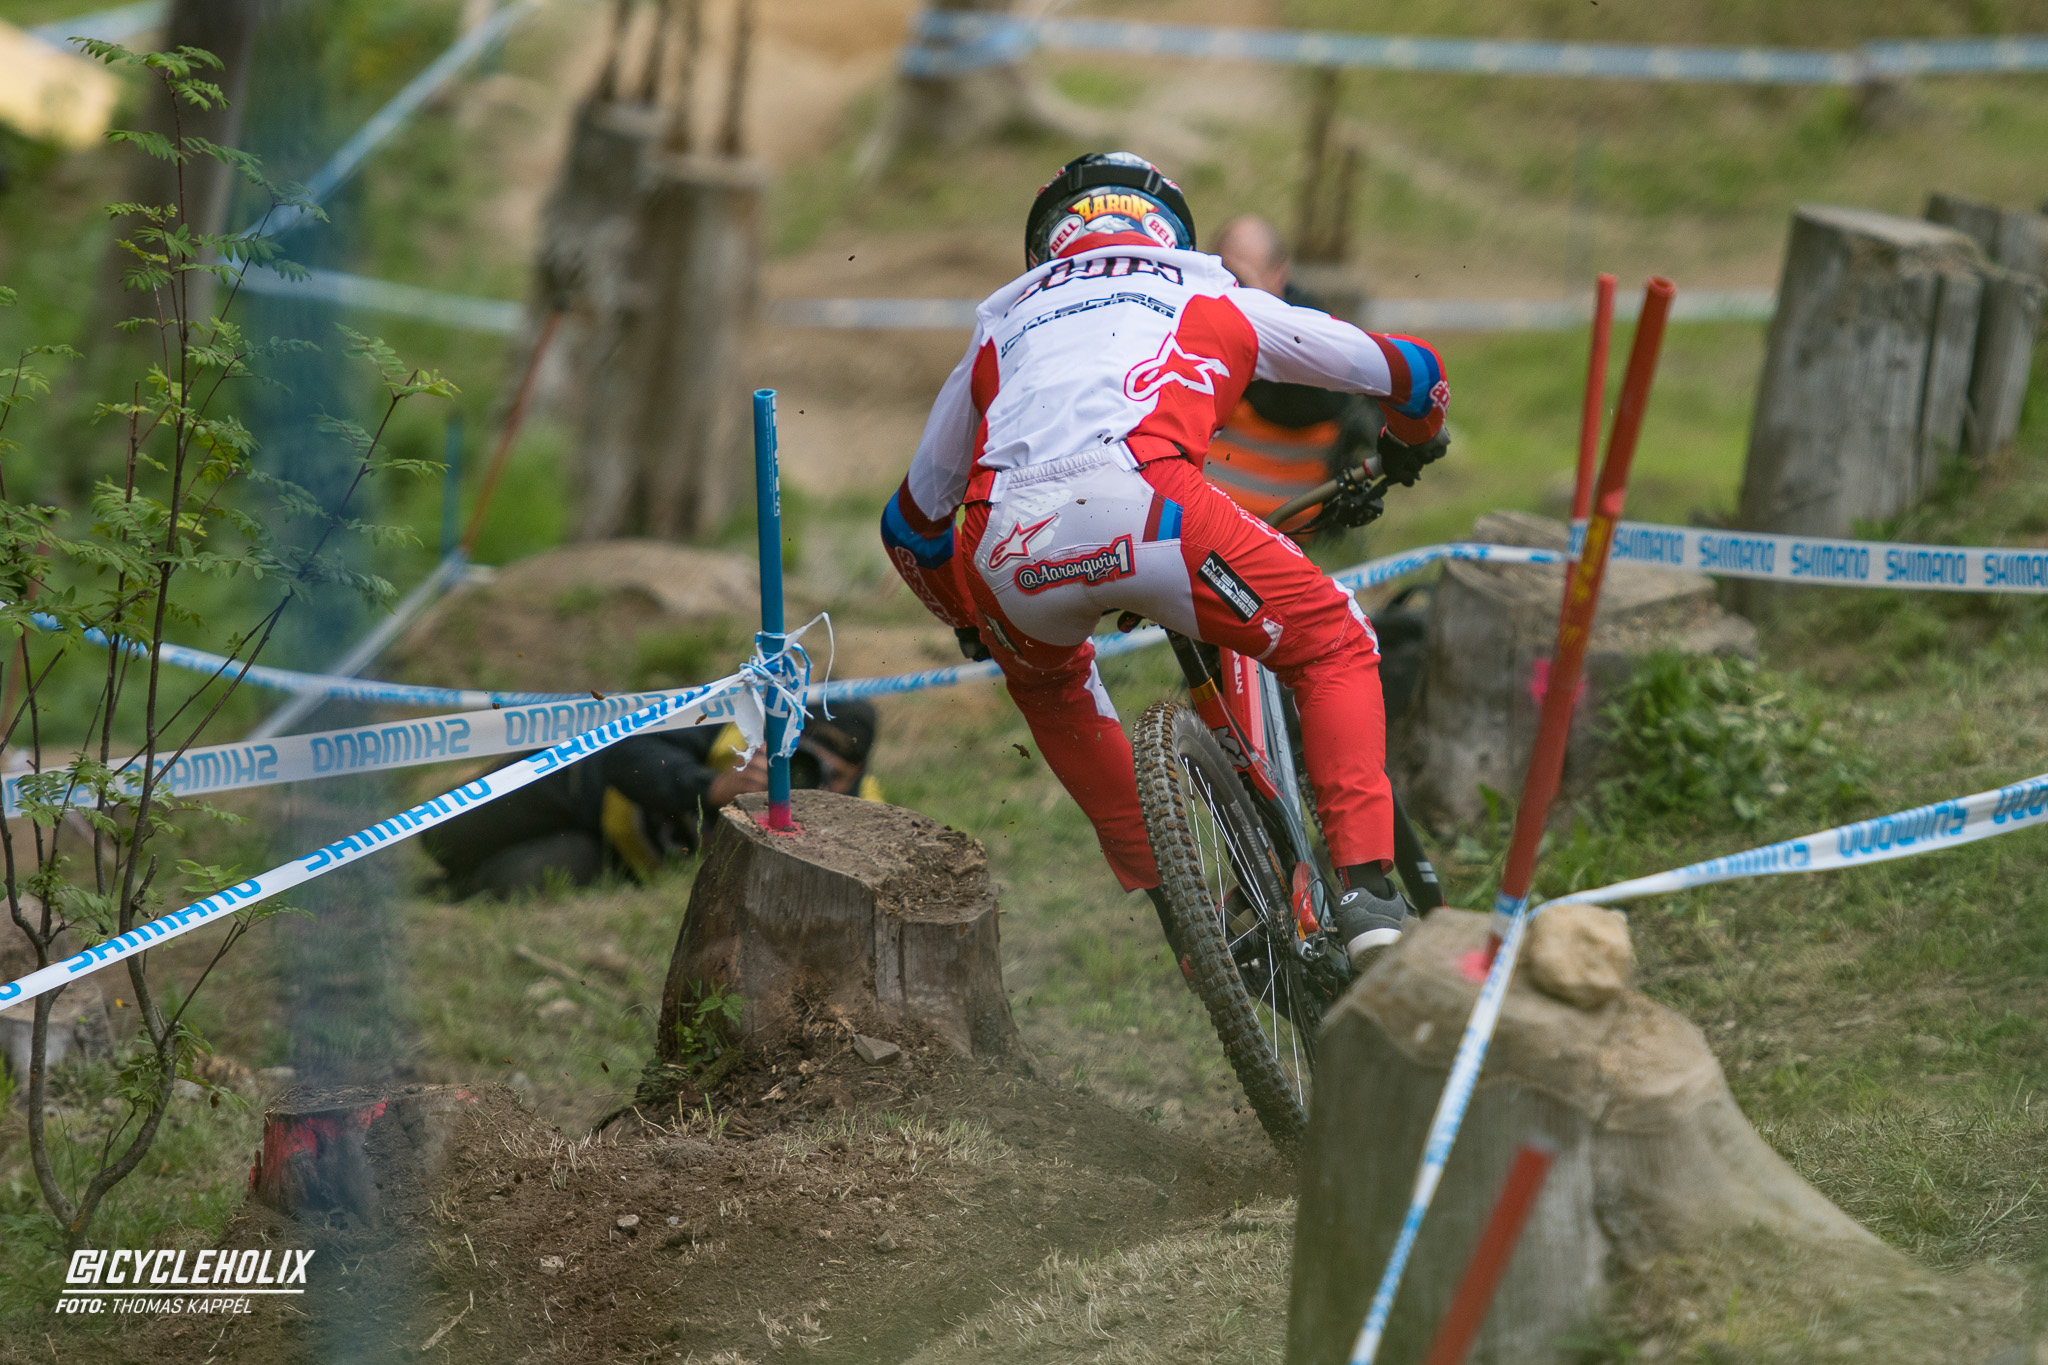 2019 Downhill Worldcup Leogang Finale Action QA 7 Cycleholix